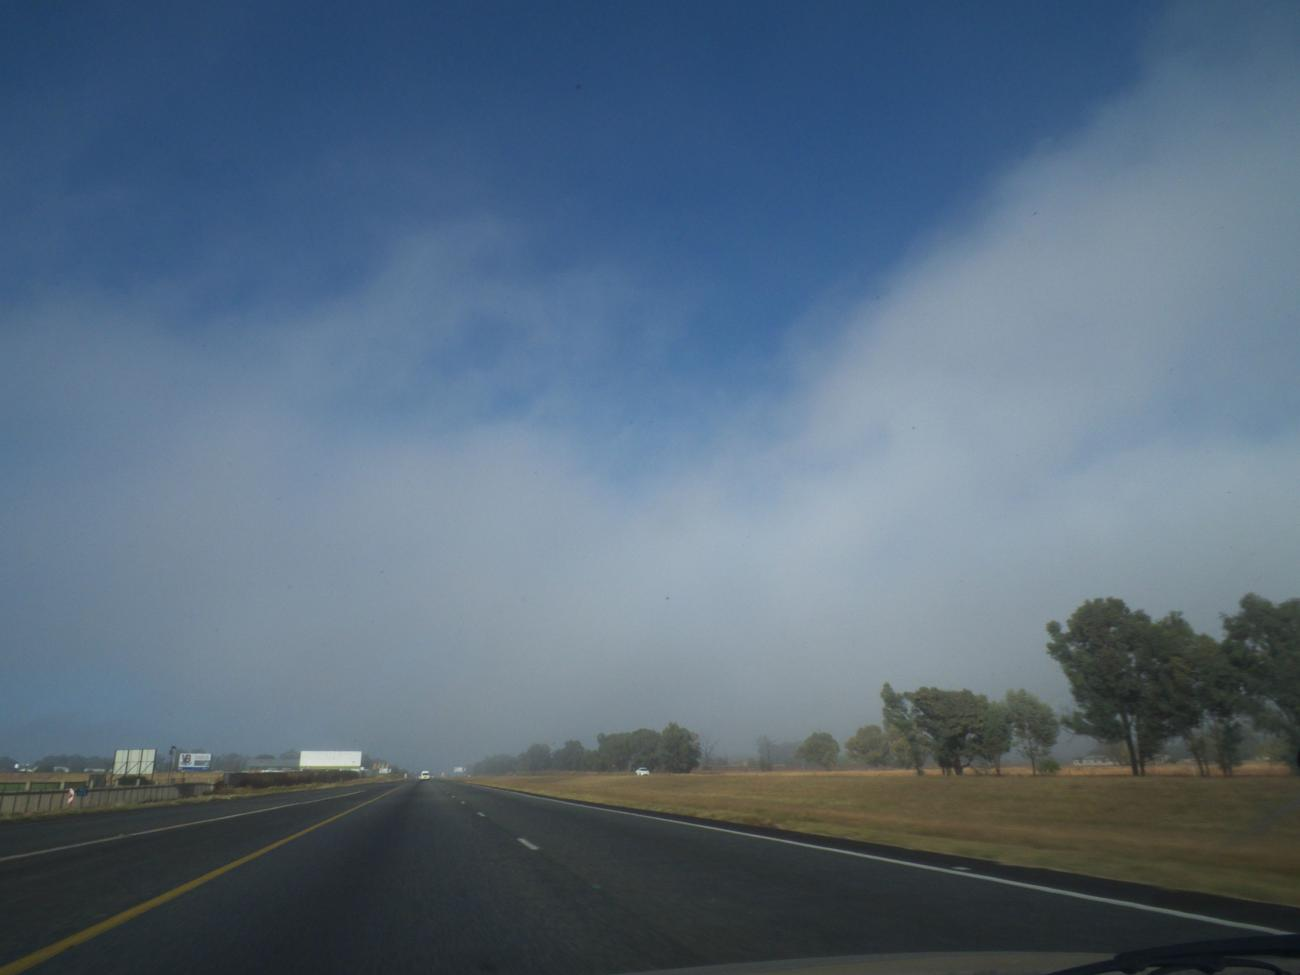 Mist on the road. by kgb224